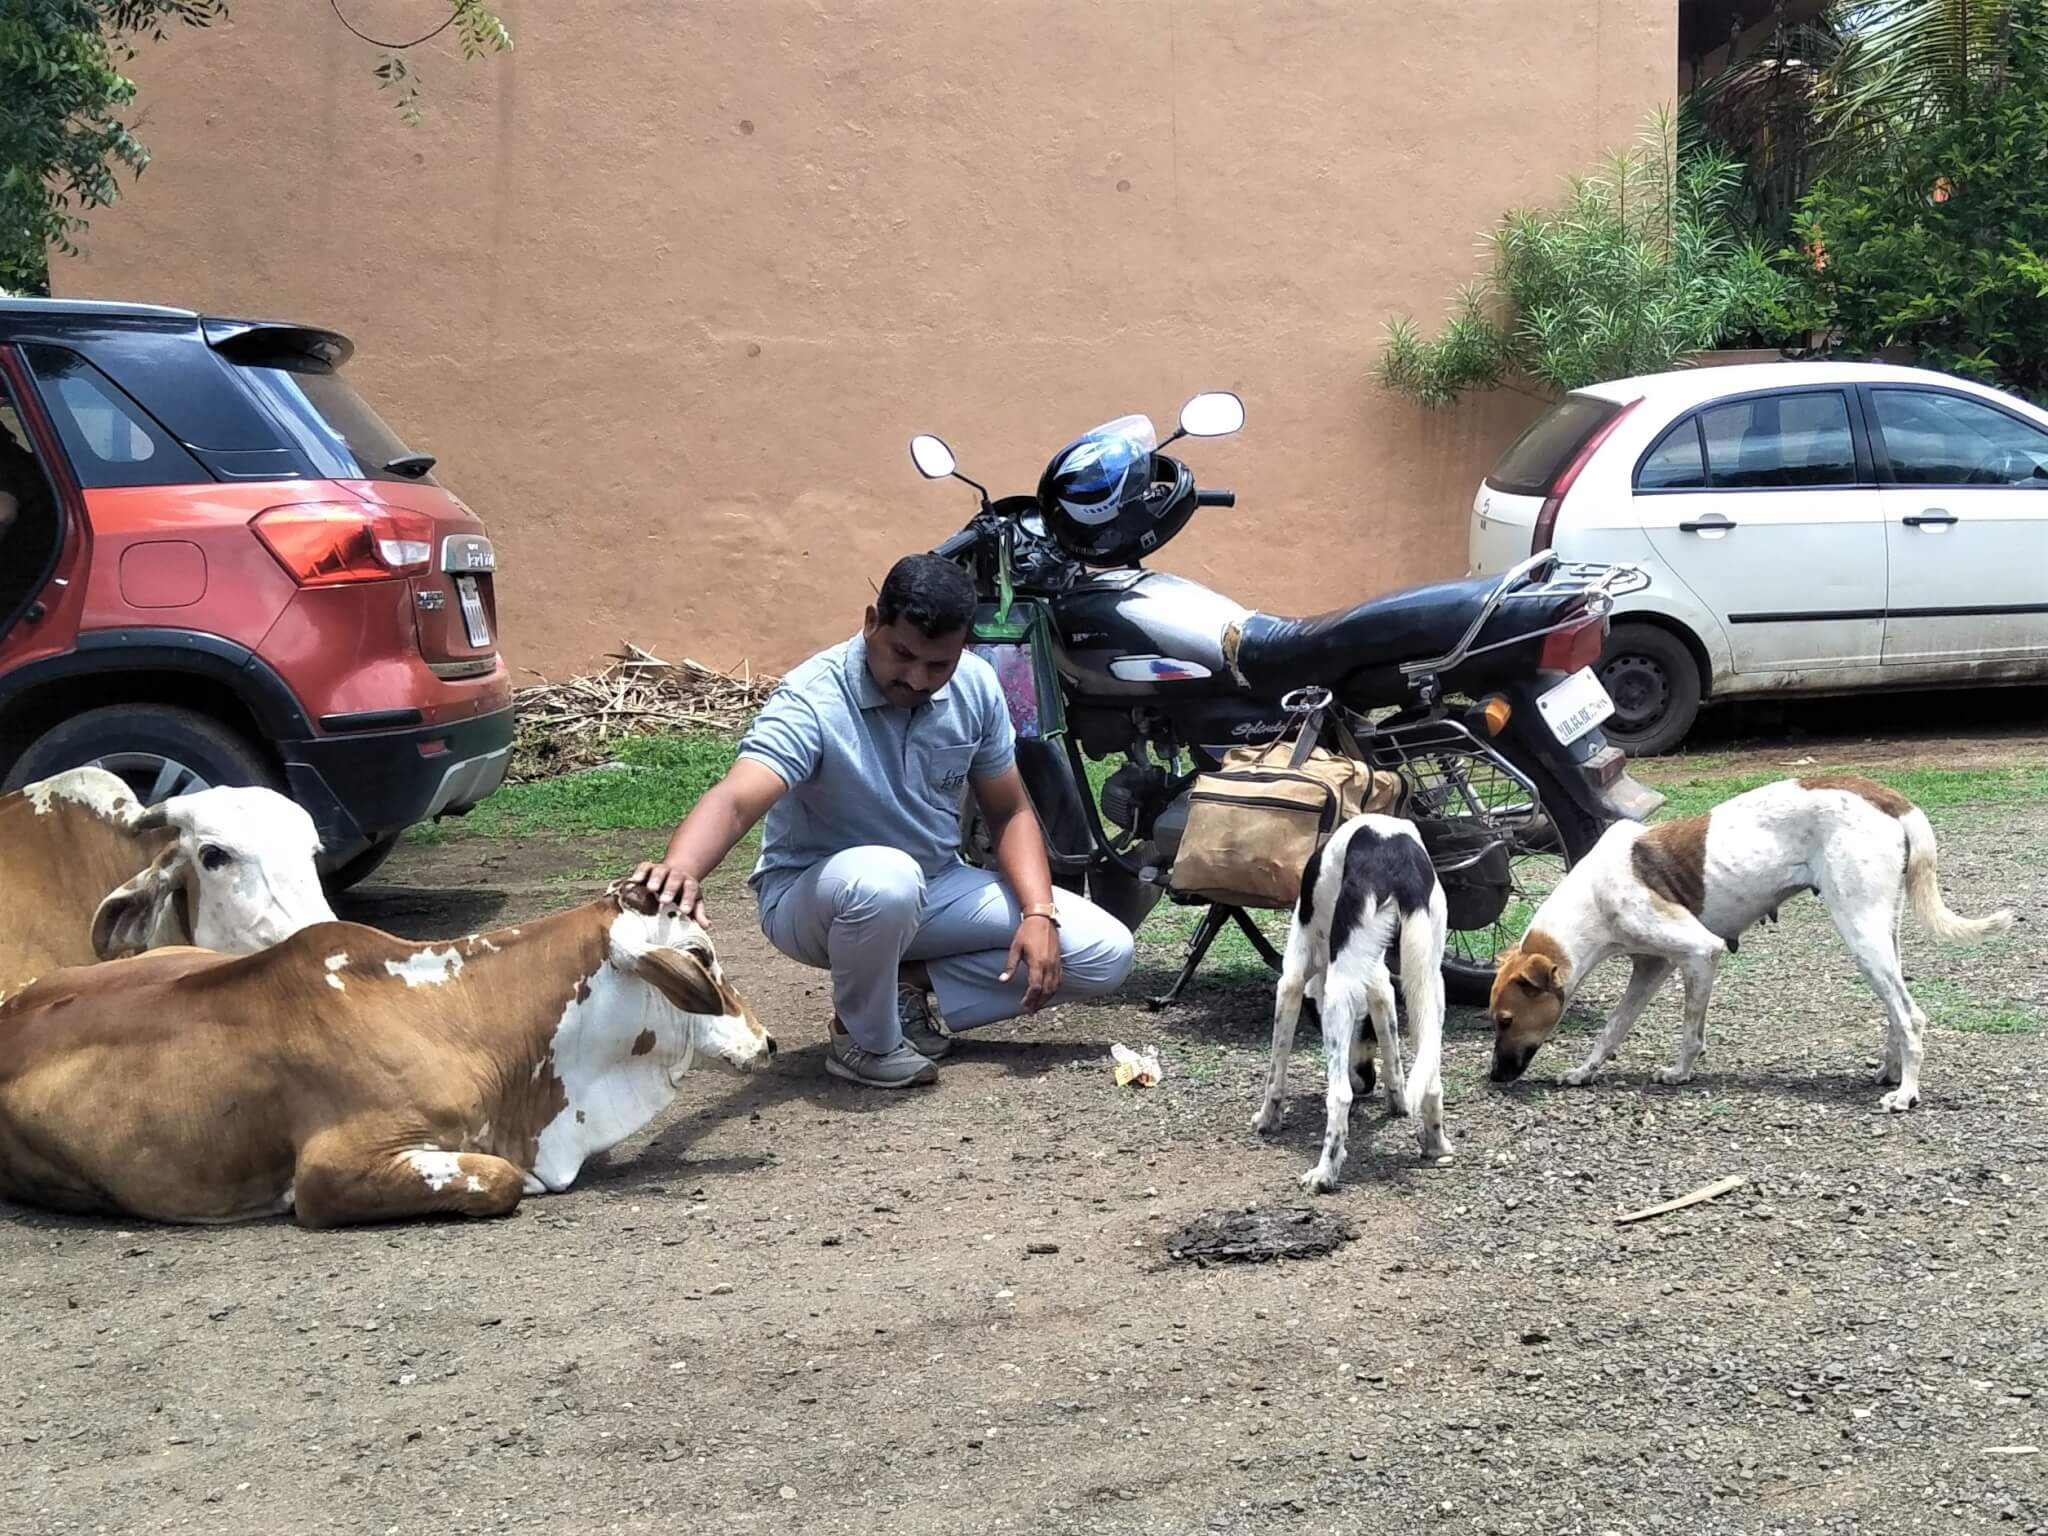 Animal Rahat scout Ajit Mote pets a cow while street dogs nearby enjoy the biscuits that he brought them.